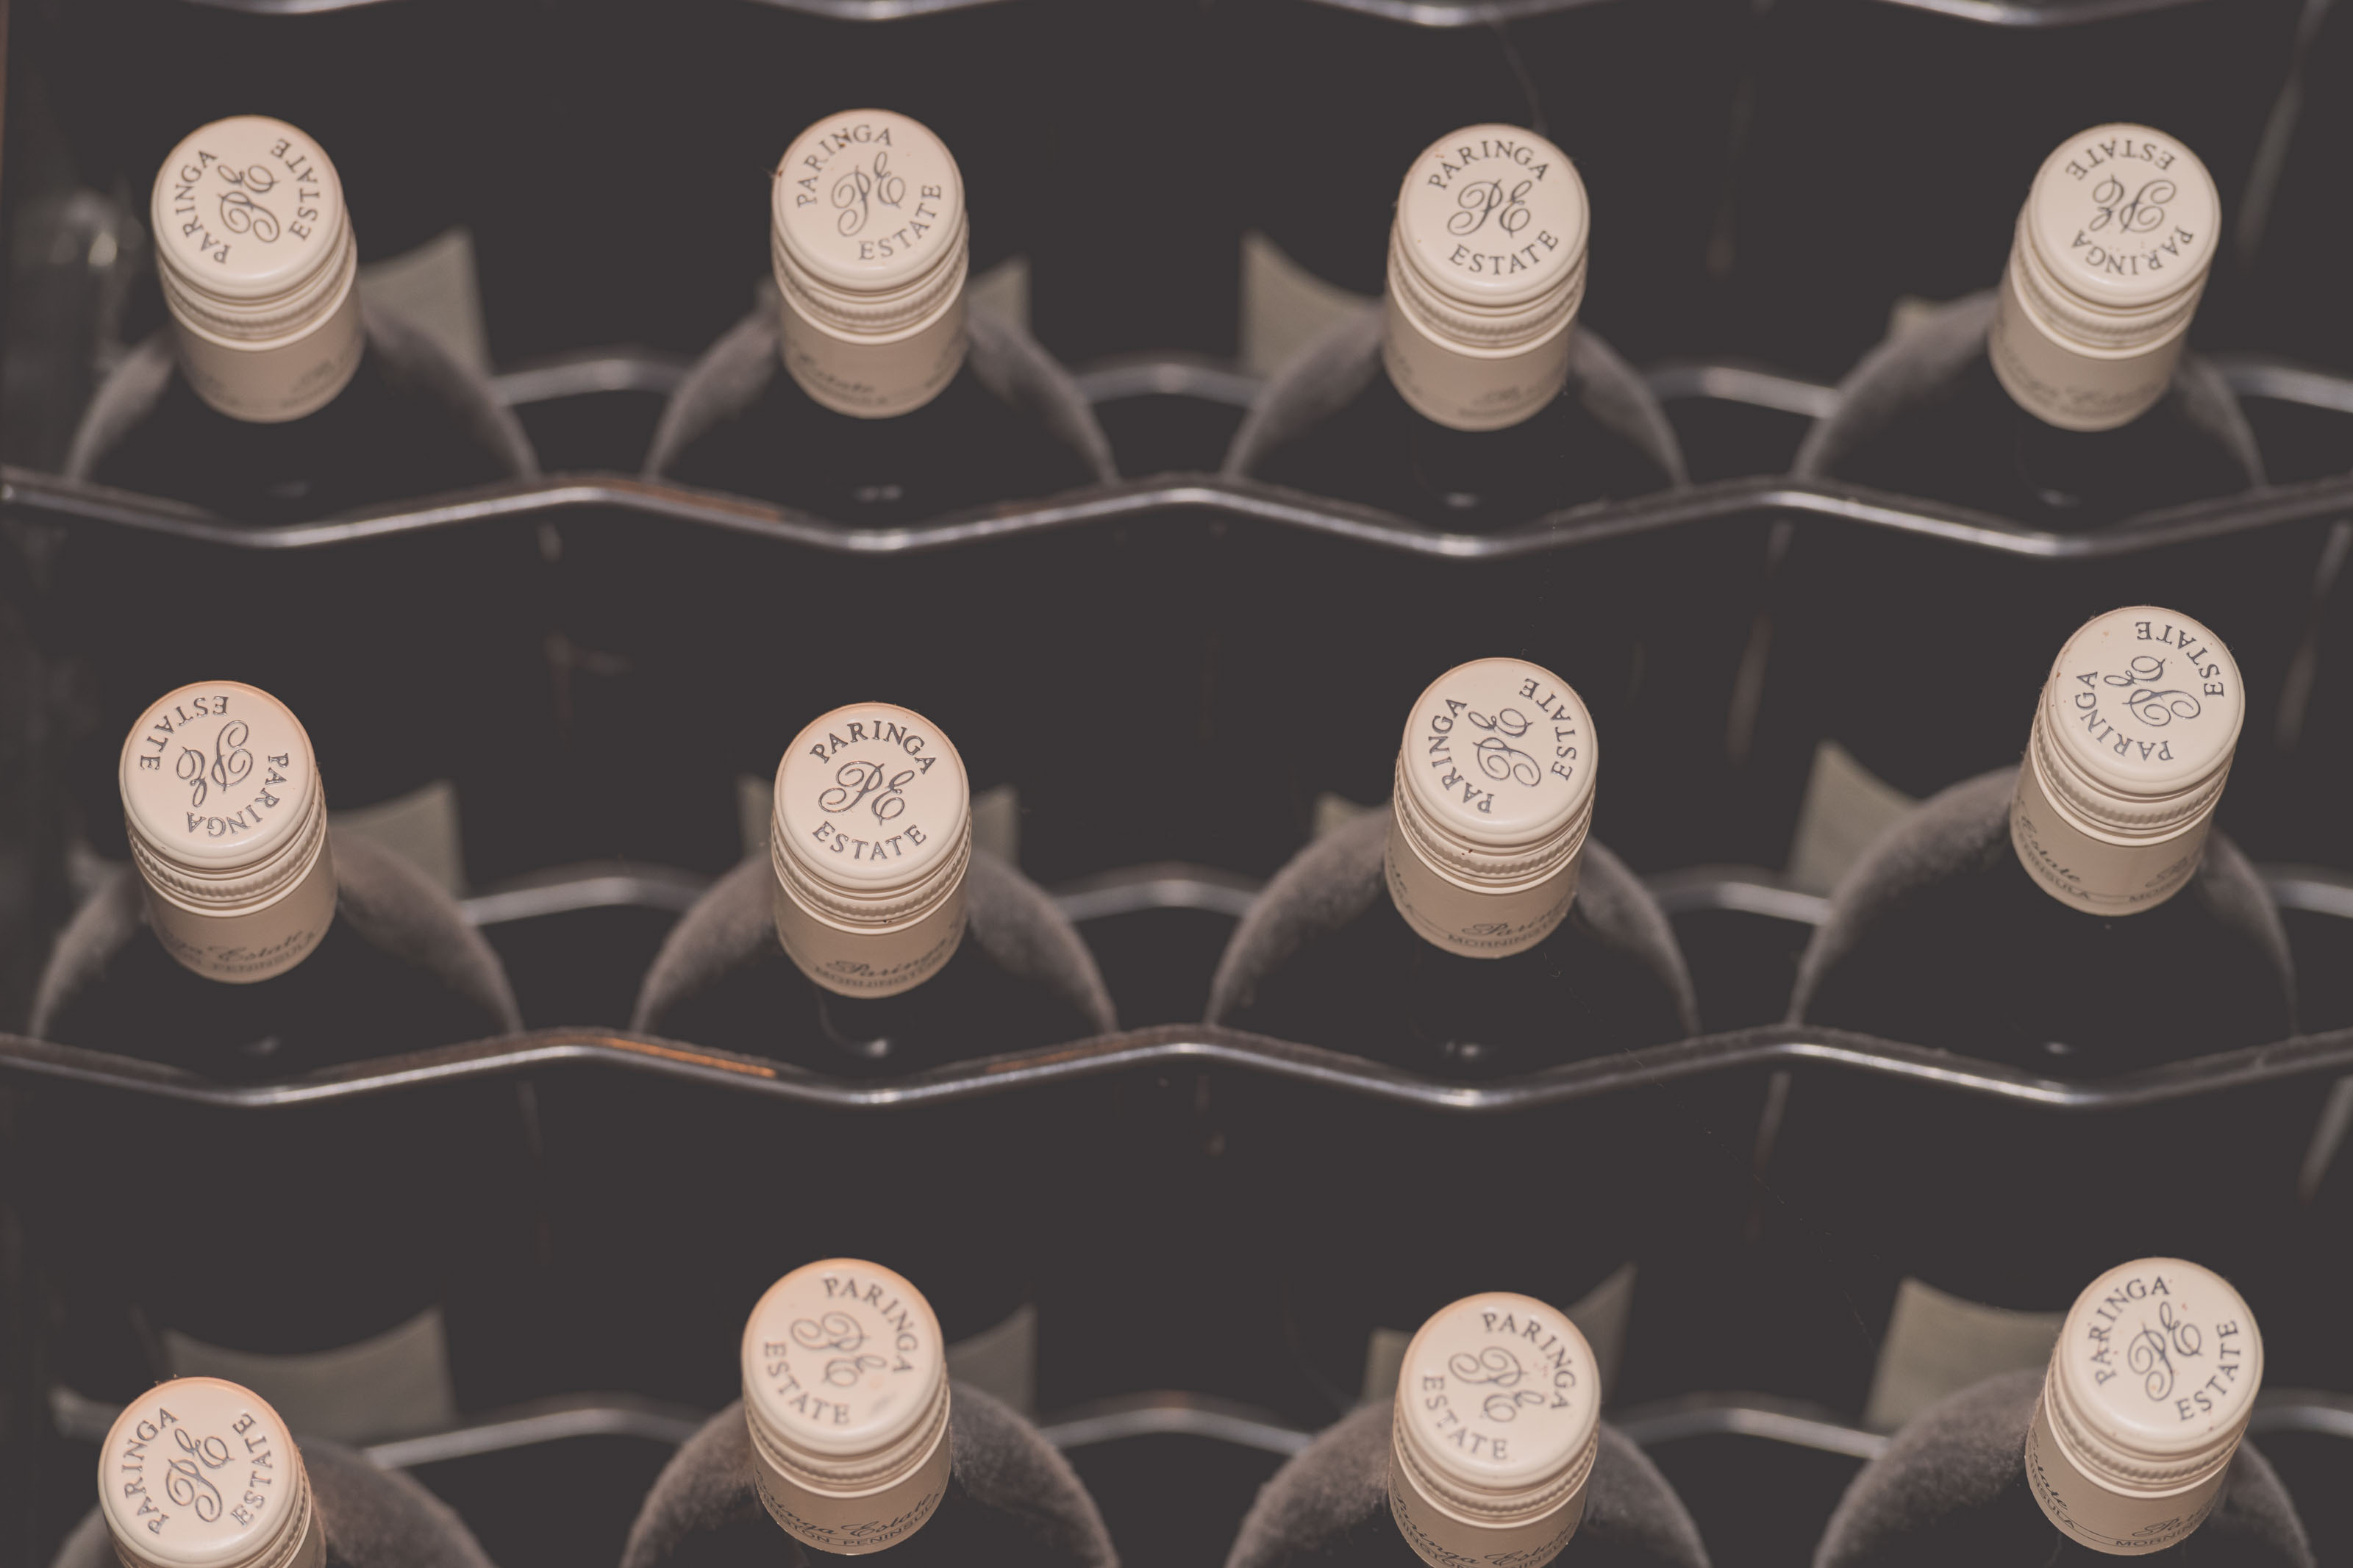 Wedding Photography Melbourne by Pause The Moment - 12 wine bottles - Paringa Estate Wedding Photographer